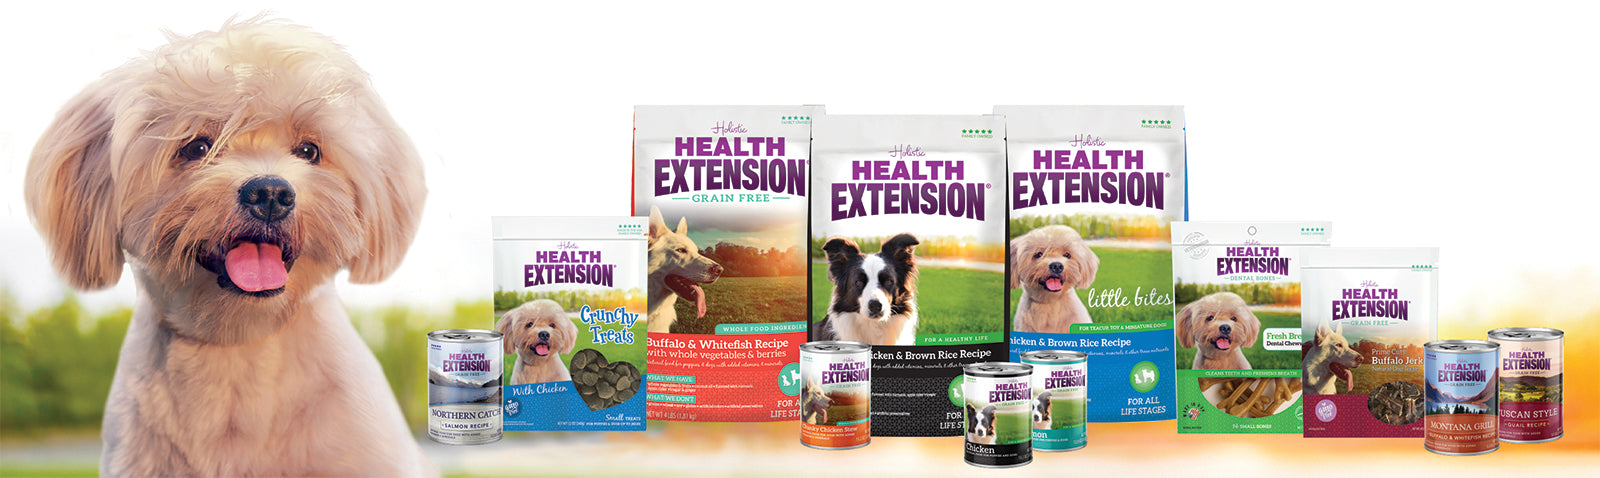 Health Extensions brand banner